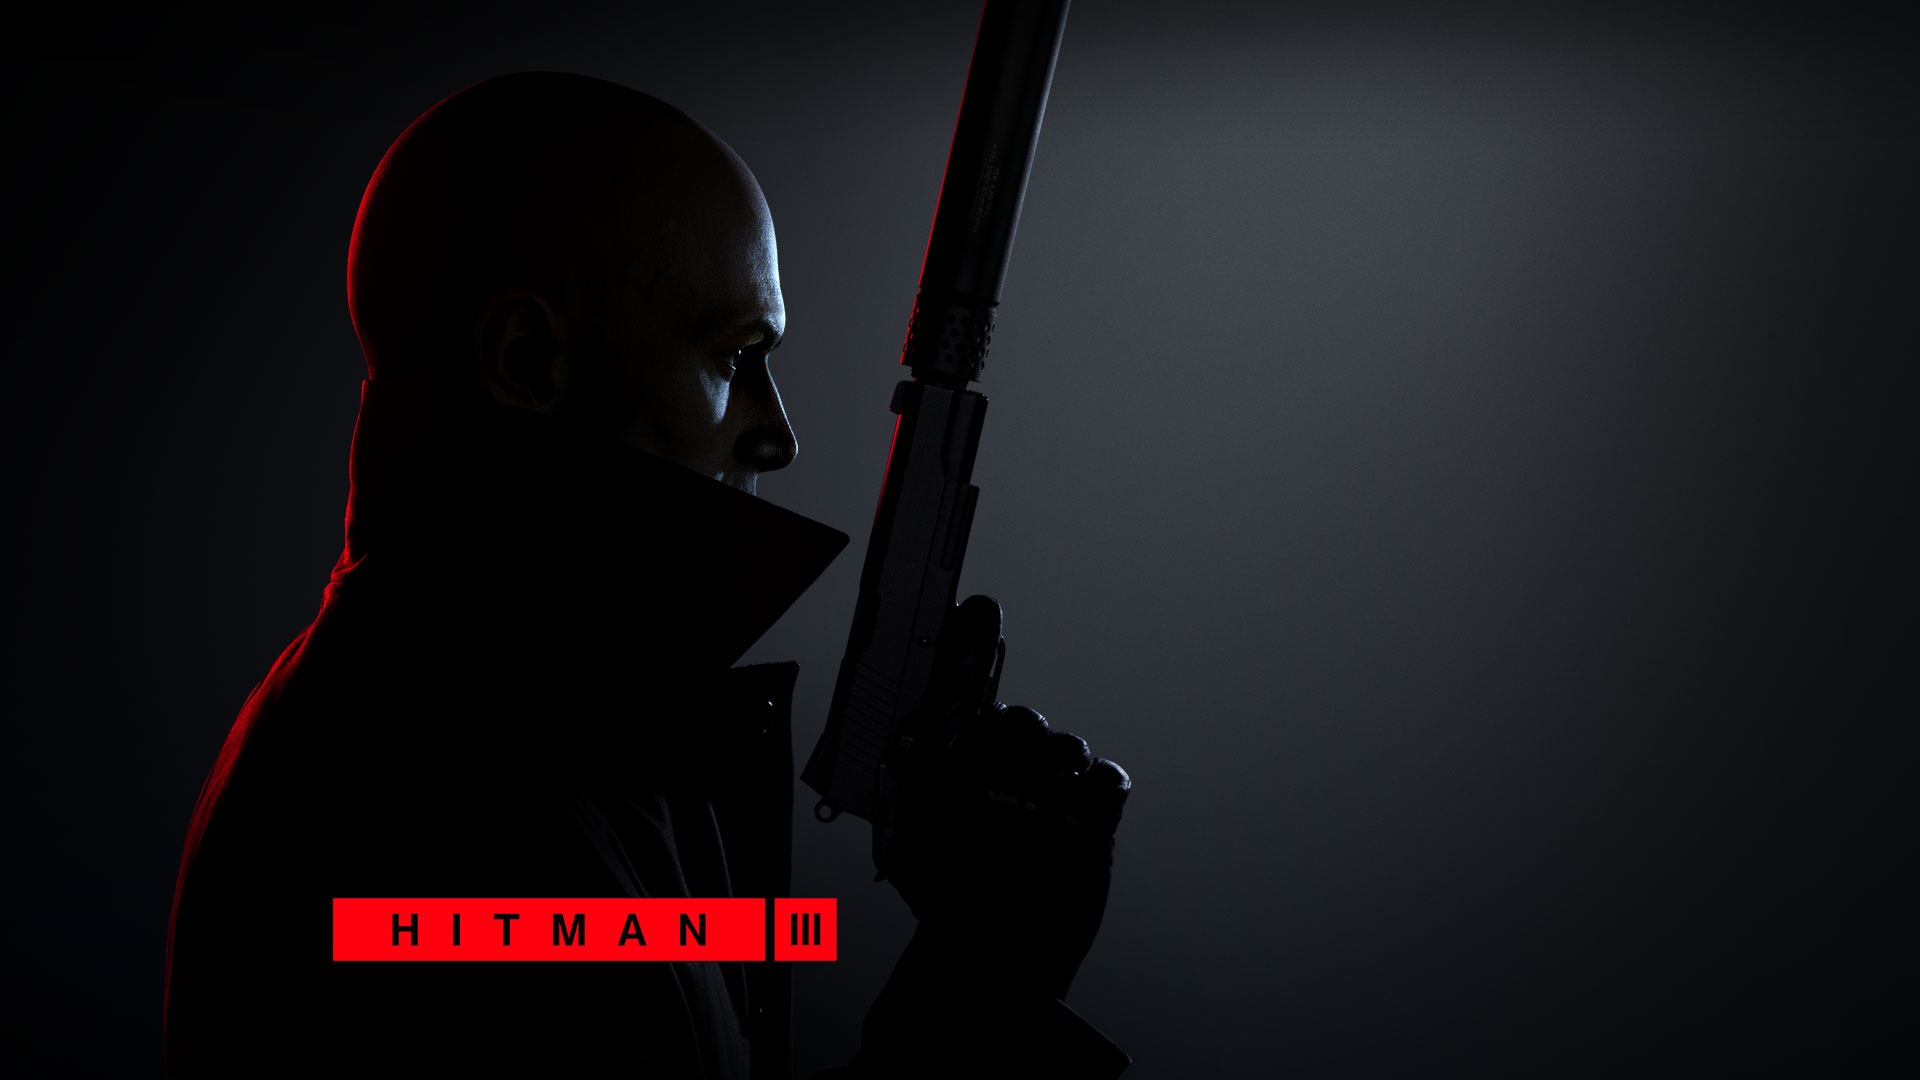 Hitman 3, Profile of Agent 47 holding a silenced pistol